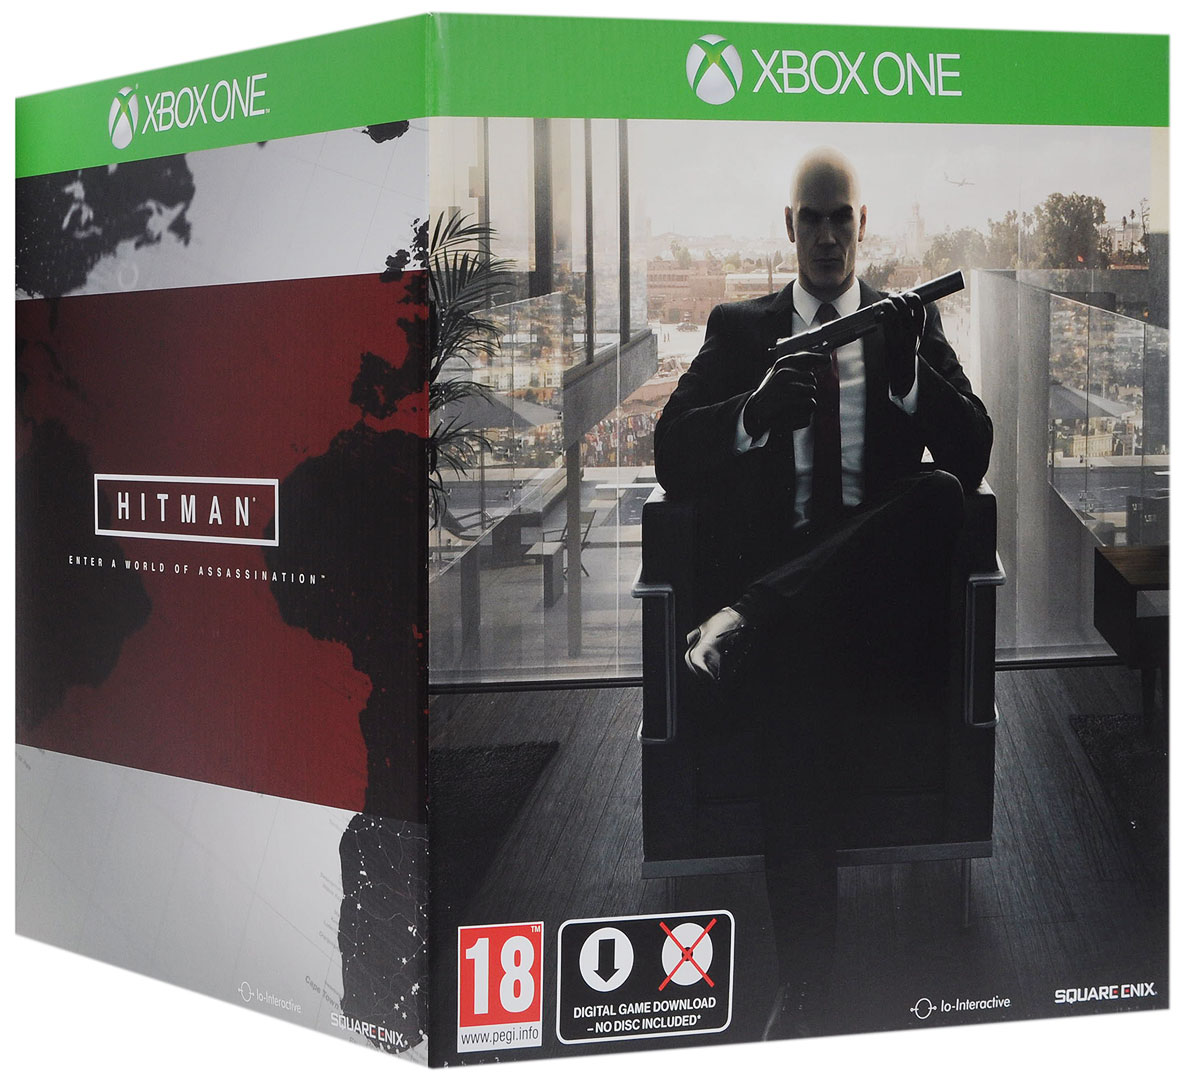 Hitman. Digital Collector's Edition (Xbox One) игра